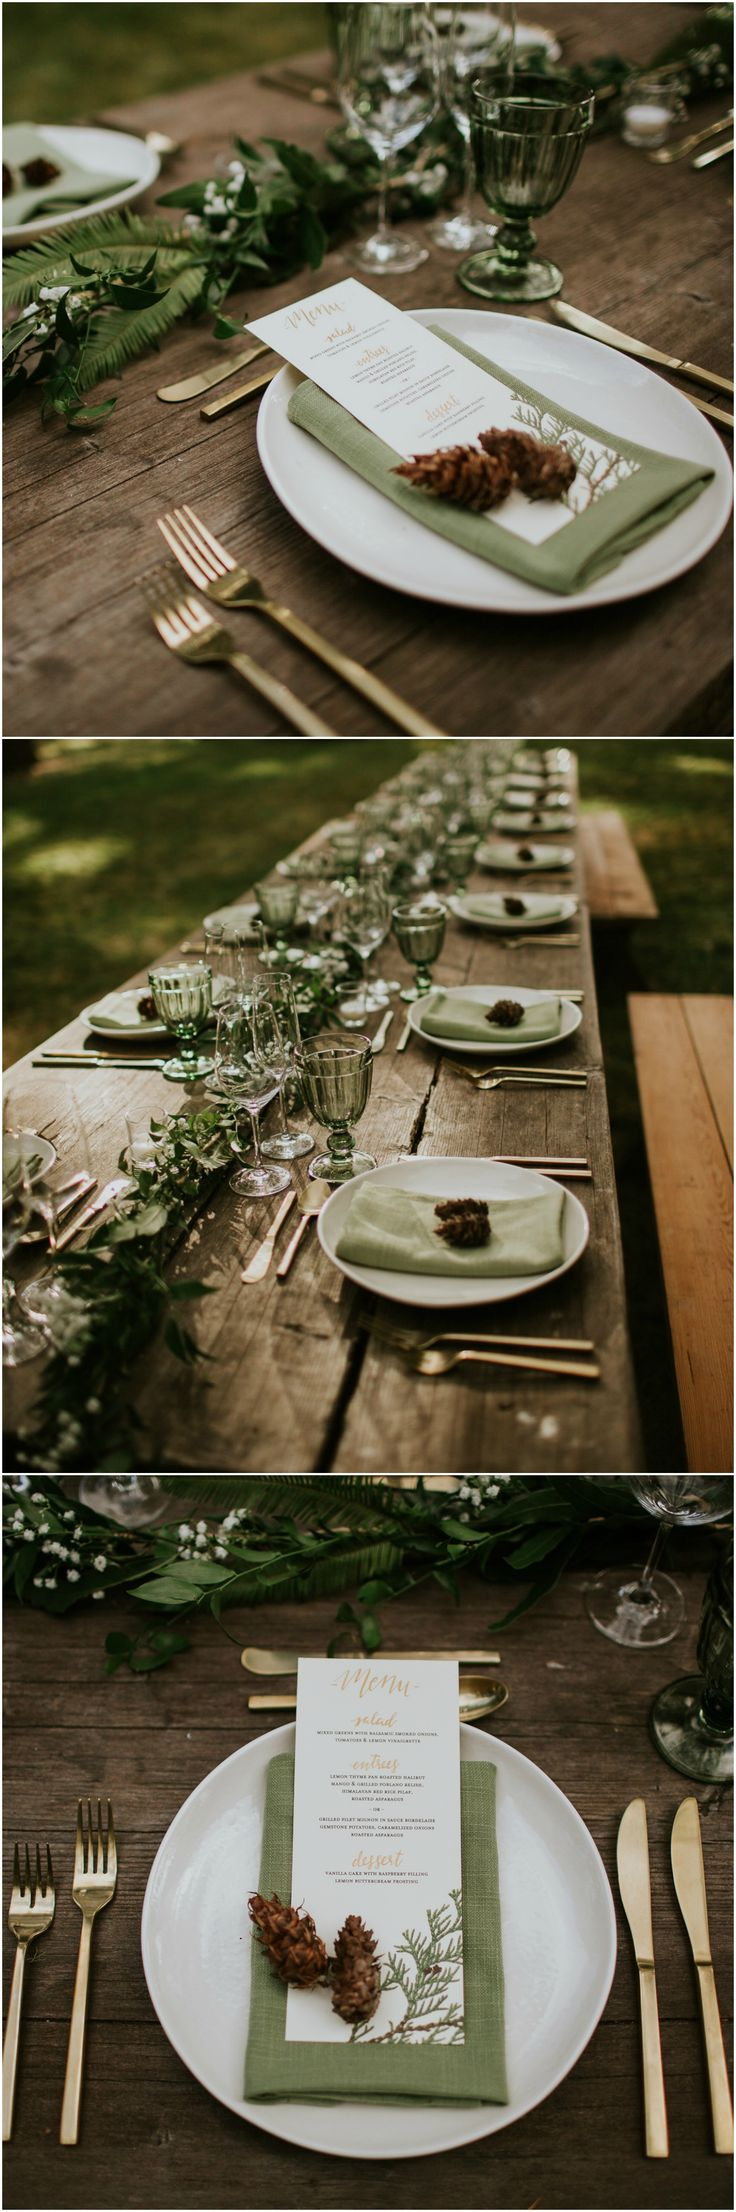 Wedding in the woods, reception décor, sage green linens, gold flatware, bare tables, pinecones // Weddings by Sunnyside